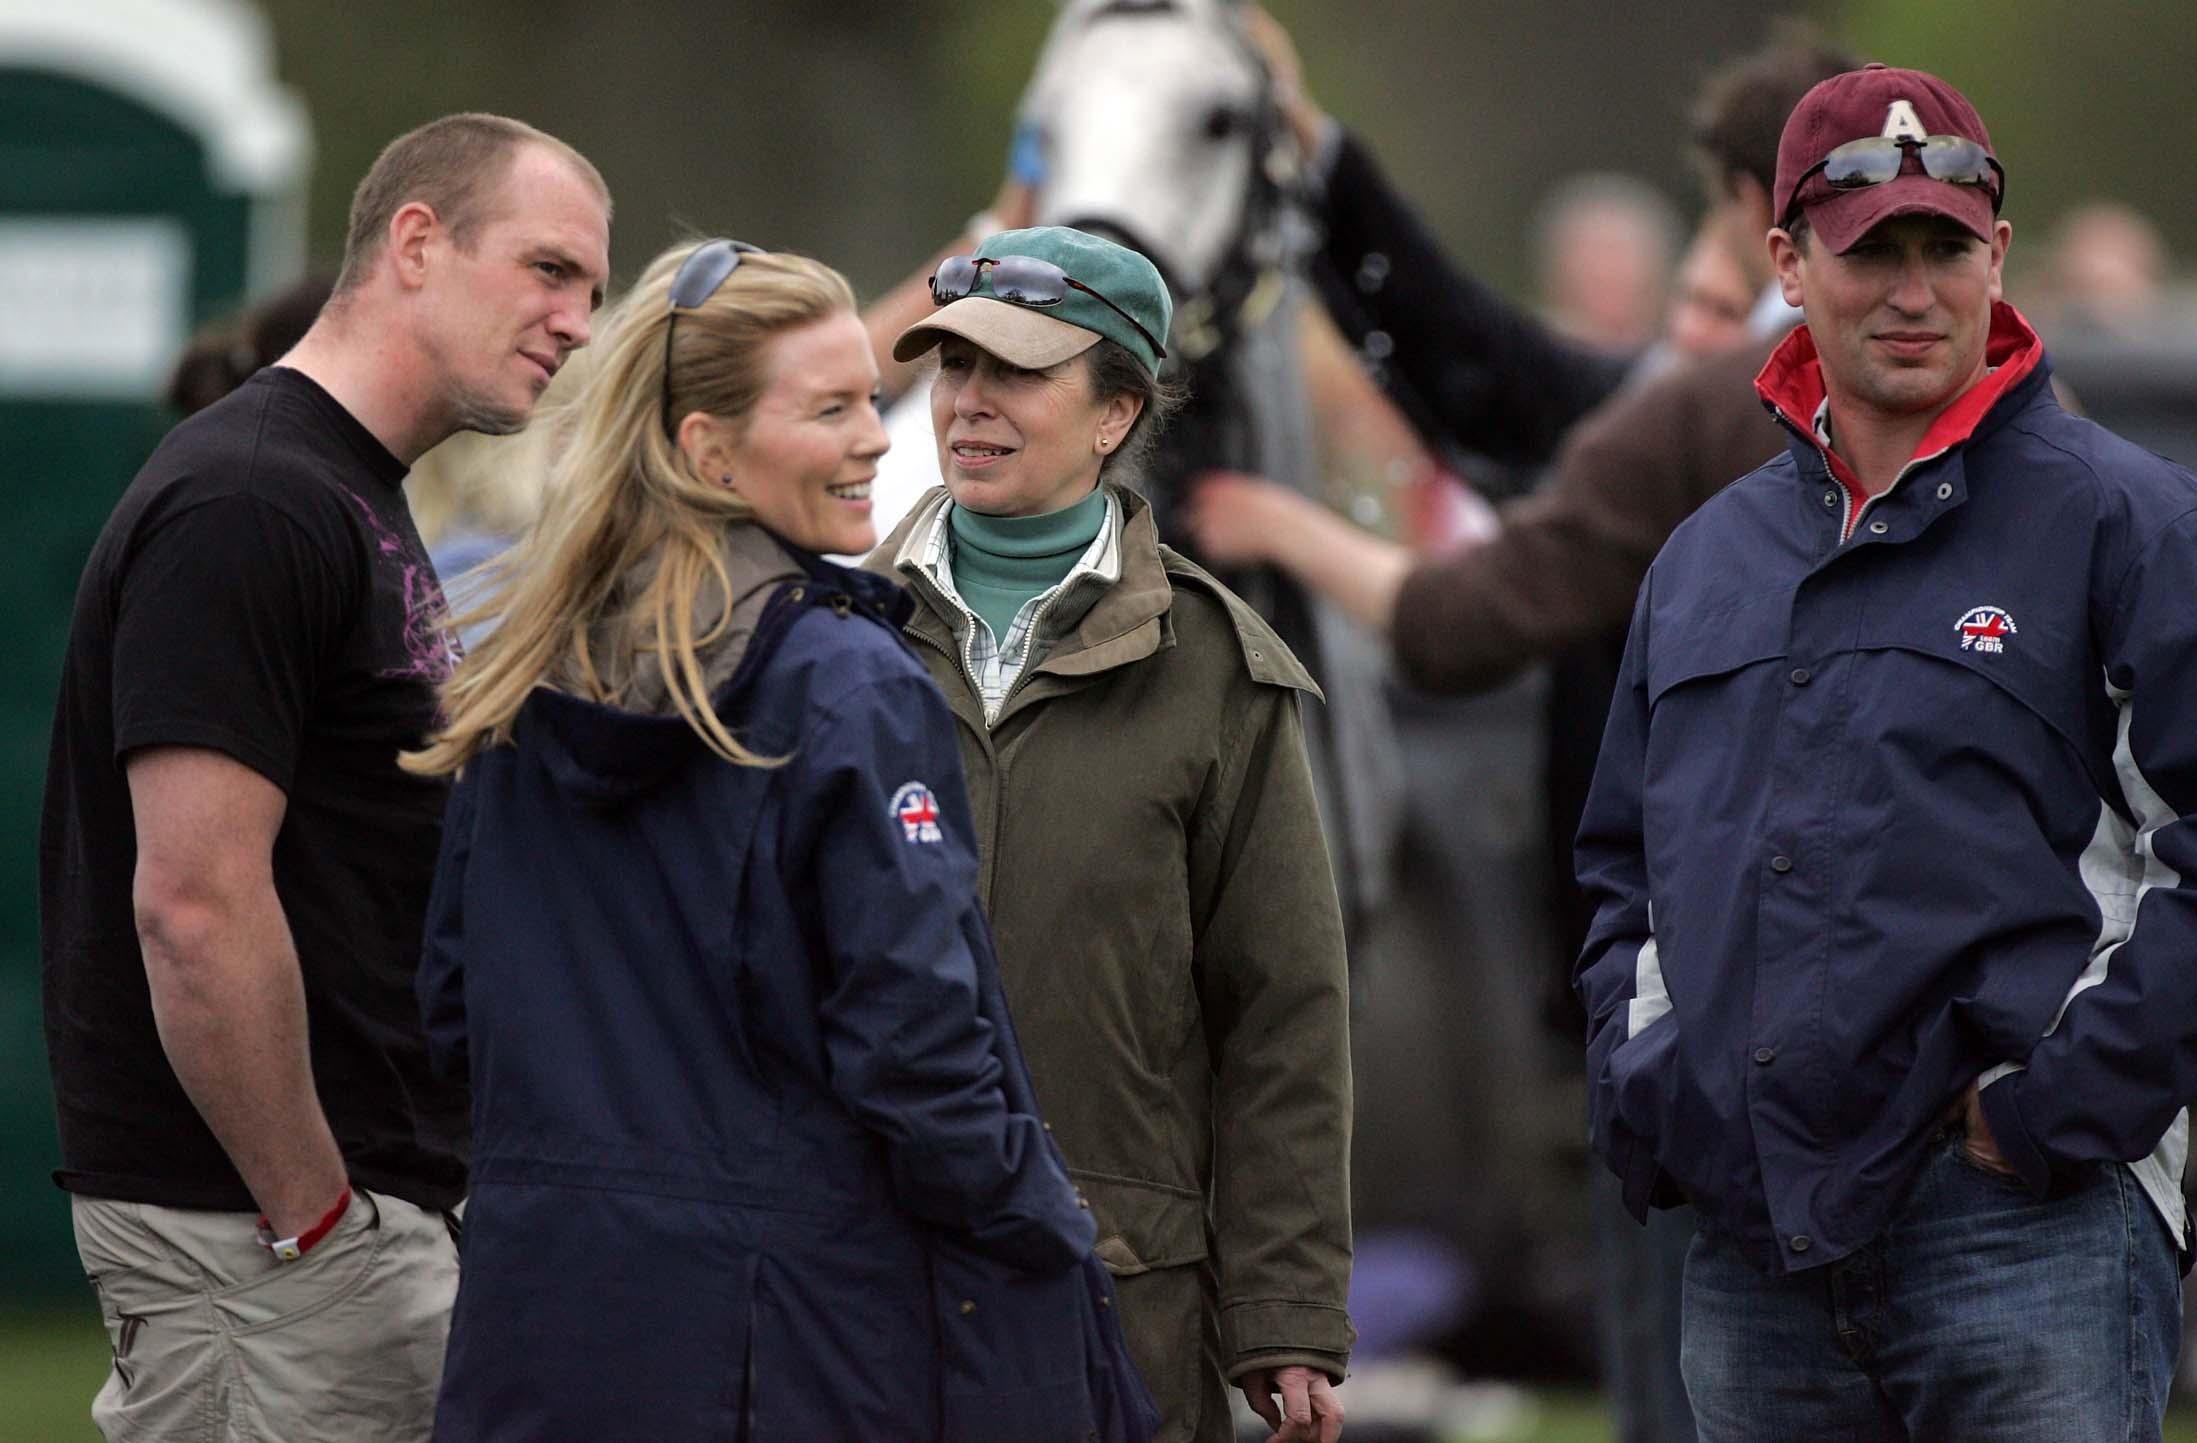 CHIPPING SODBURY, UNITED KINGDOM - MAY 03:  Zara Phillips' boyfriend, England and Gloucester rugby player, Mike Tindall chats with (L-R) Autumn Kelly, Princess Anne and Peter Phillips chat following the cross country during the Badminton Horse Trials on May 3 2008 in Badminton, England. Reigning world champion Zara Phillips is riding Glenbuck and Ardfield Magic Star at the world's largest three-day event as the British equestrian team look to finalise their 2008 Olympic squad. The event started with two days of dressage moving into cross country before finishing with showjumping tomorrow.  (Photo by Matt Cardy/Getty Images)